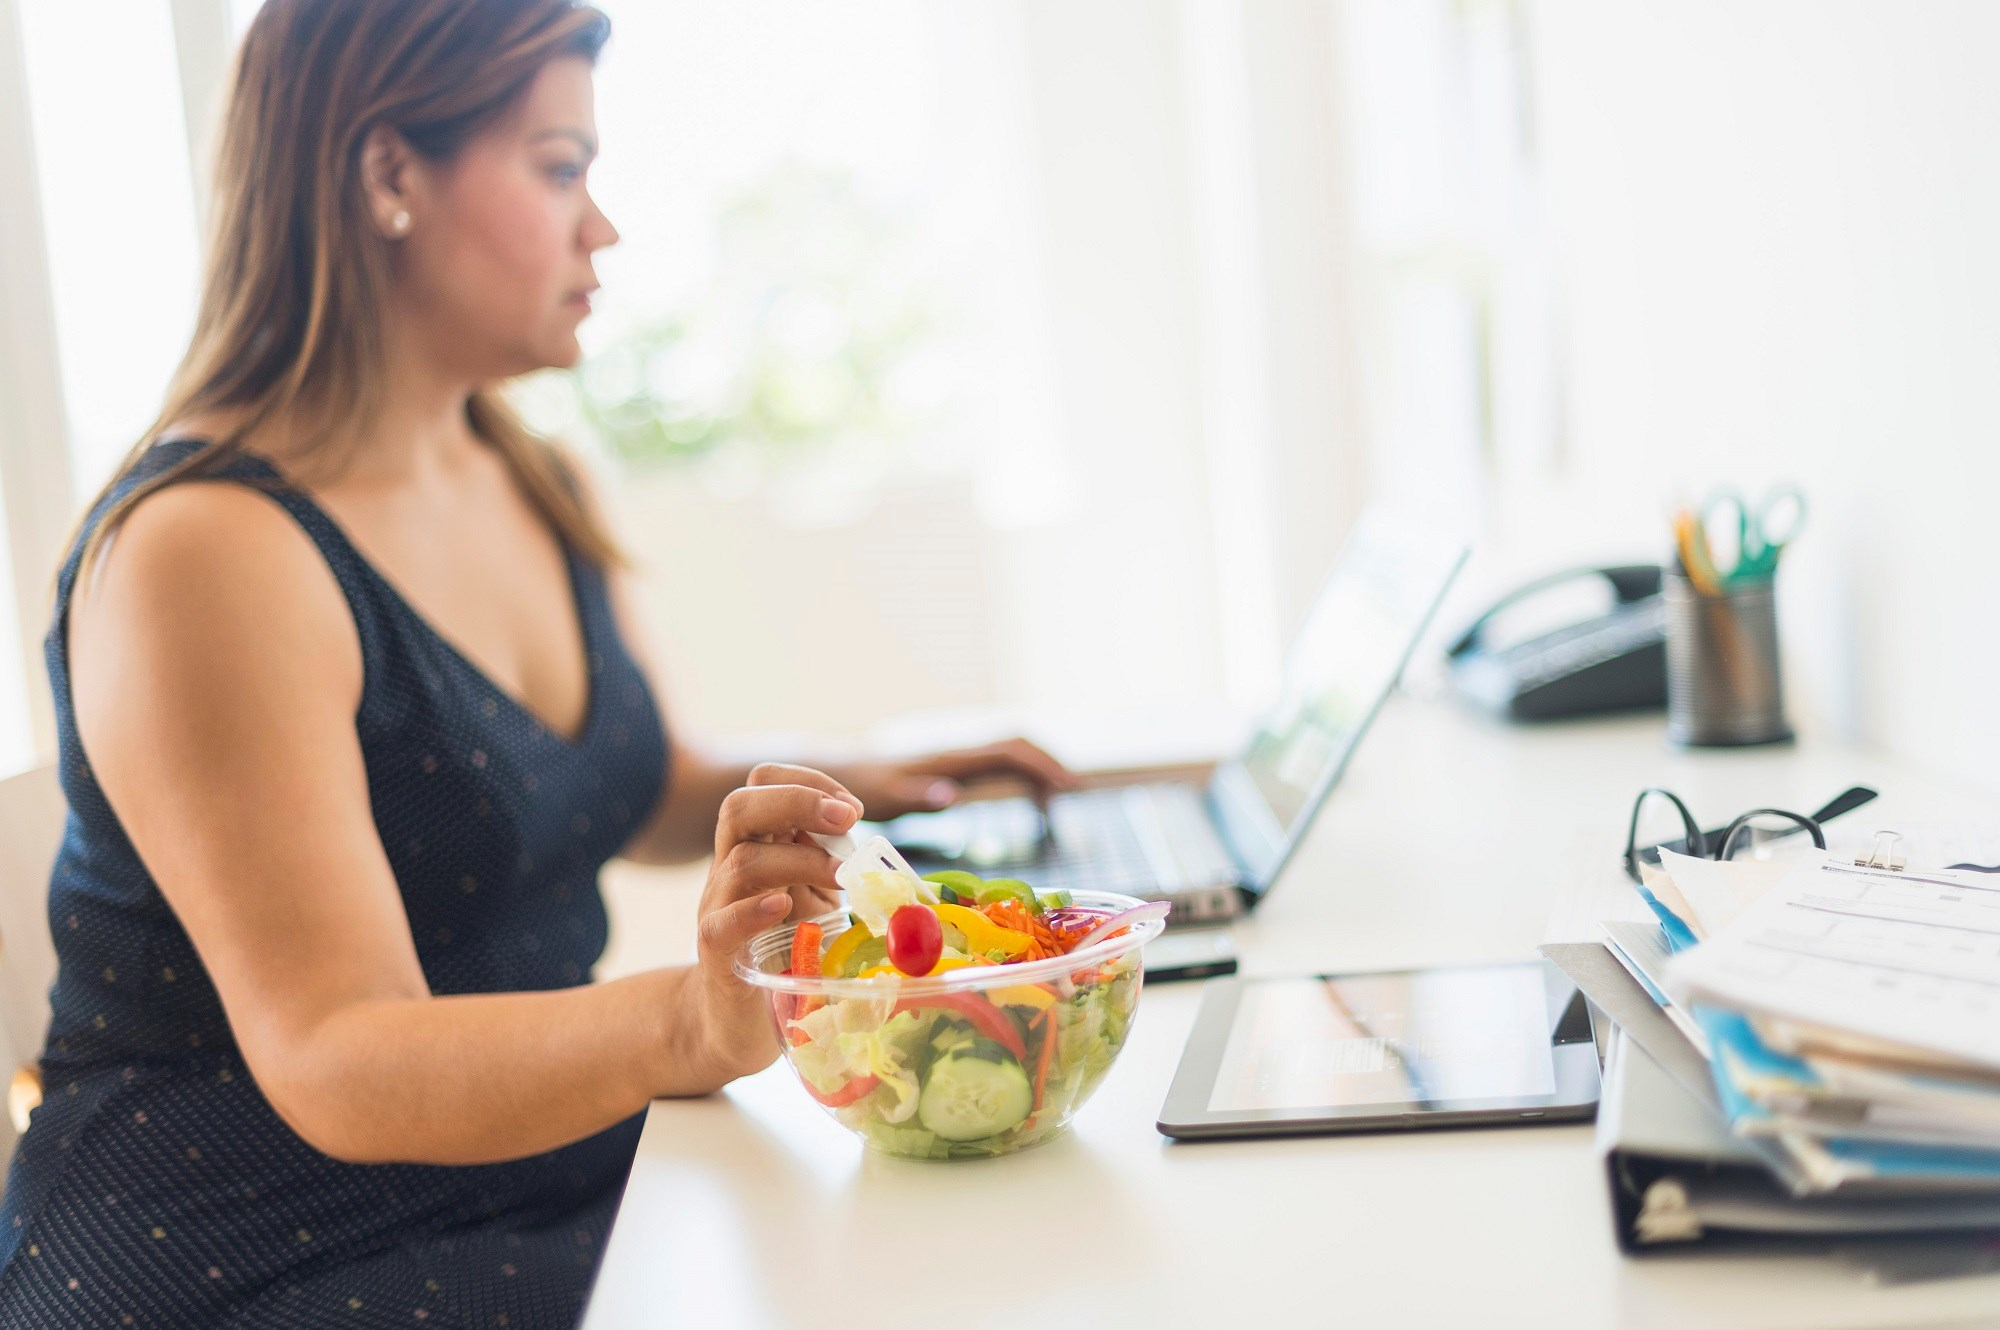 Effects of a Low-Carbohydrate Diet on Weight Loss Maintenance